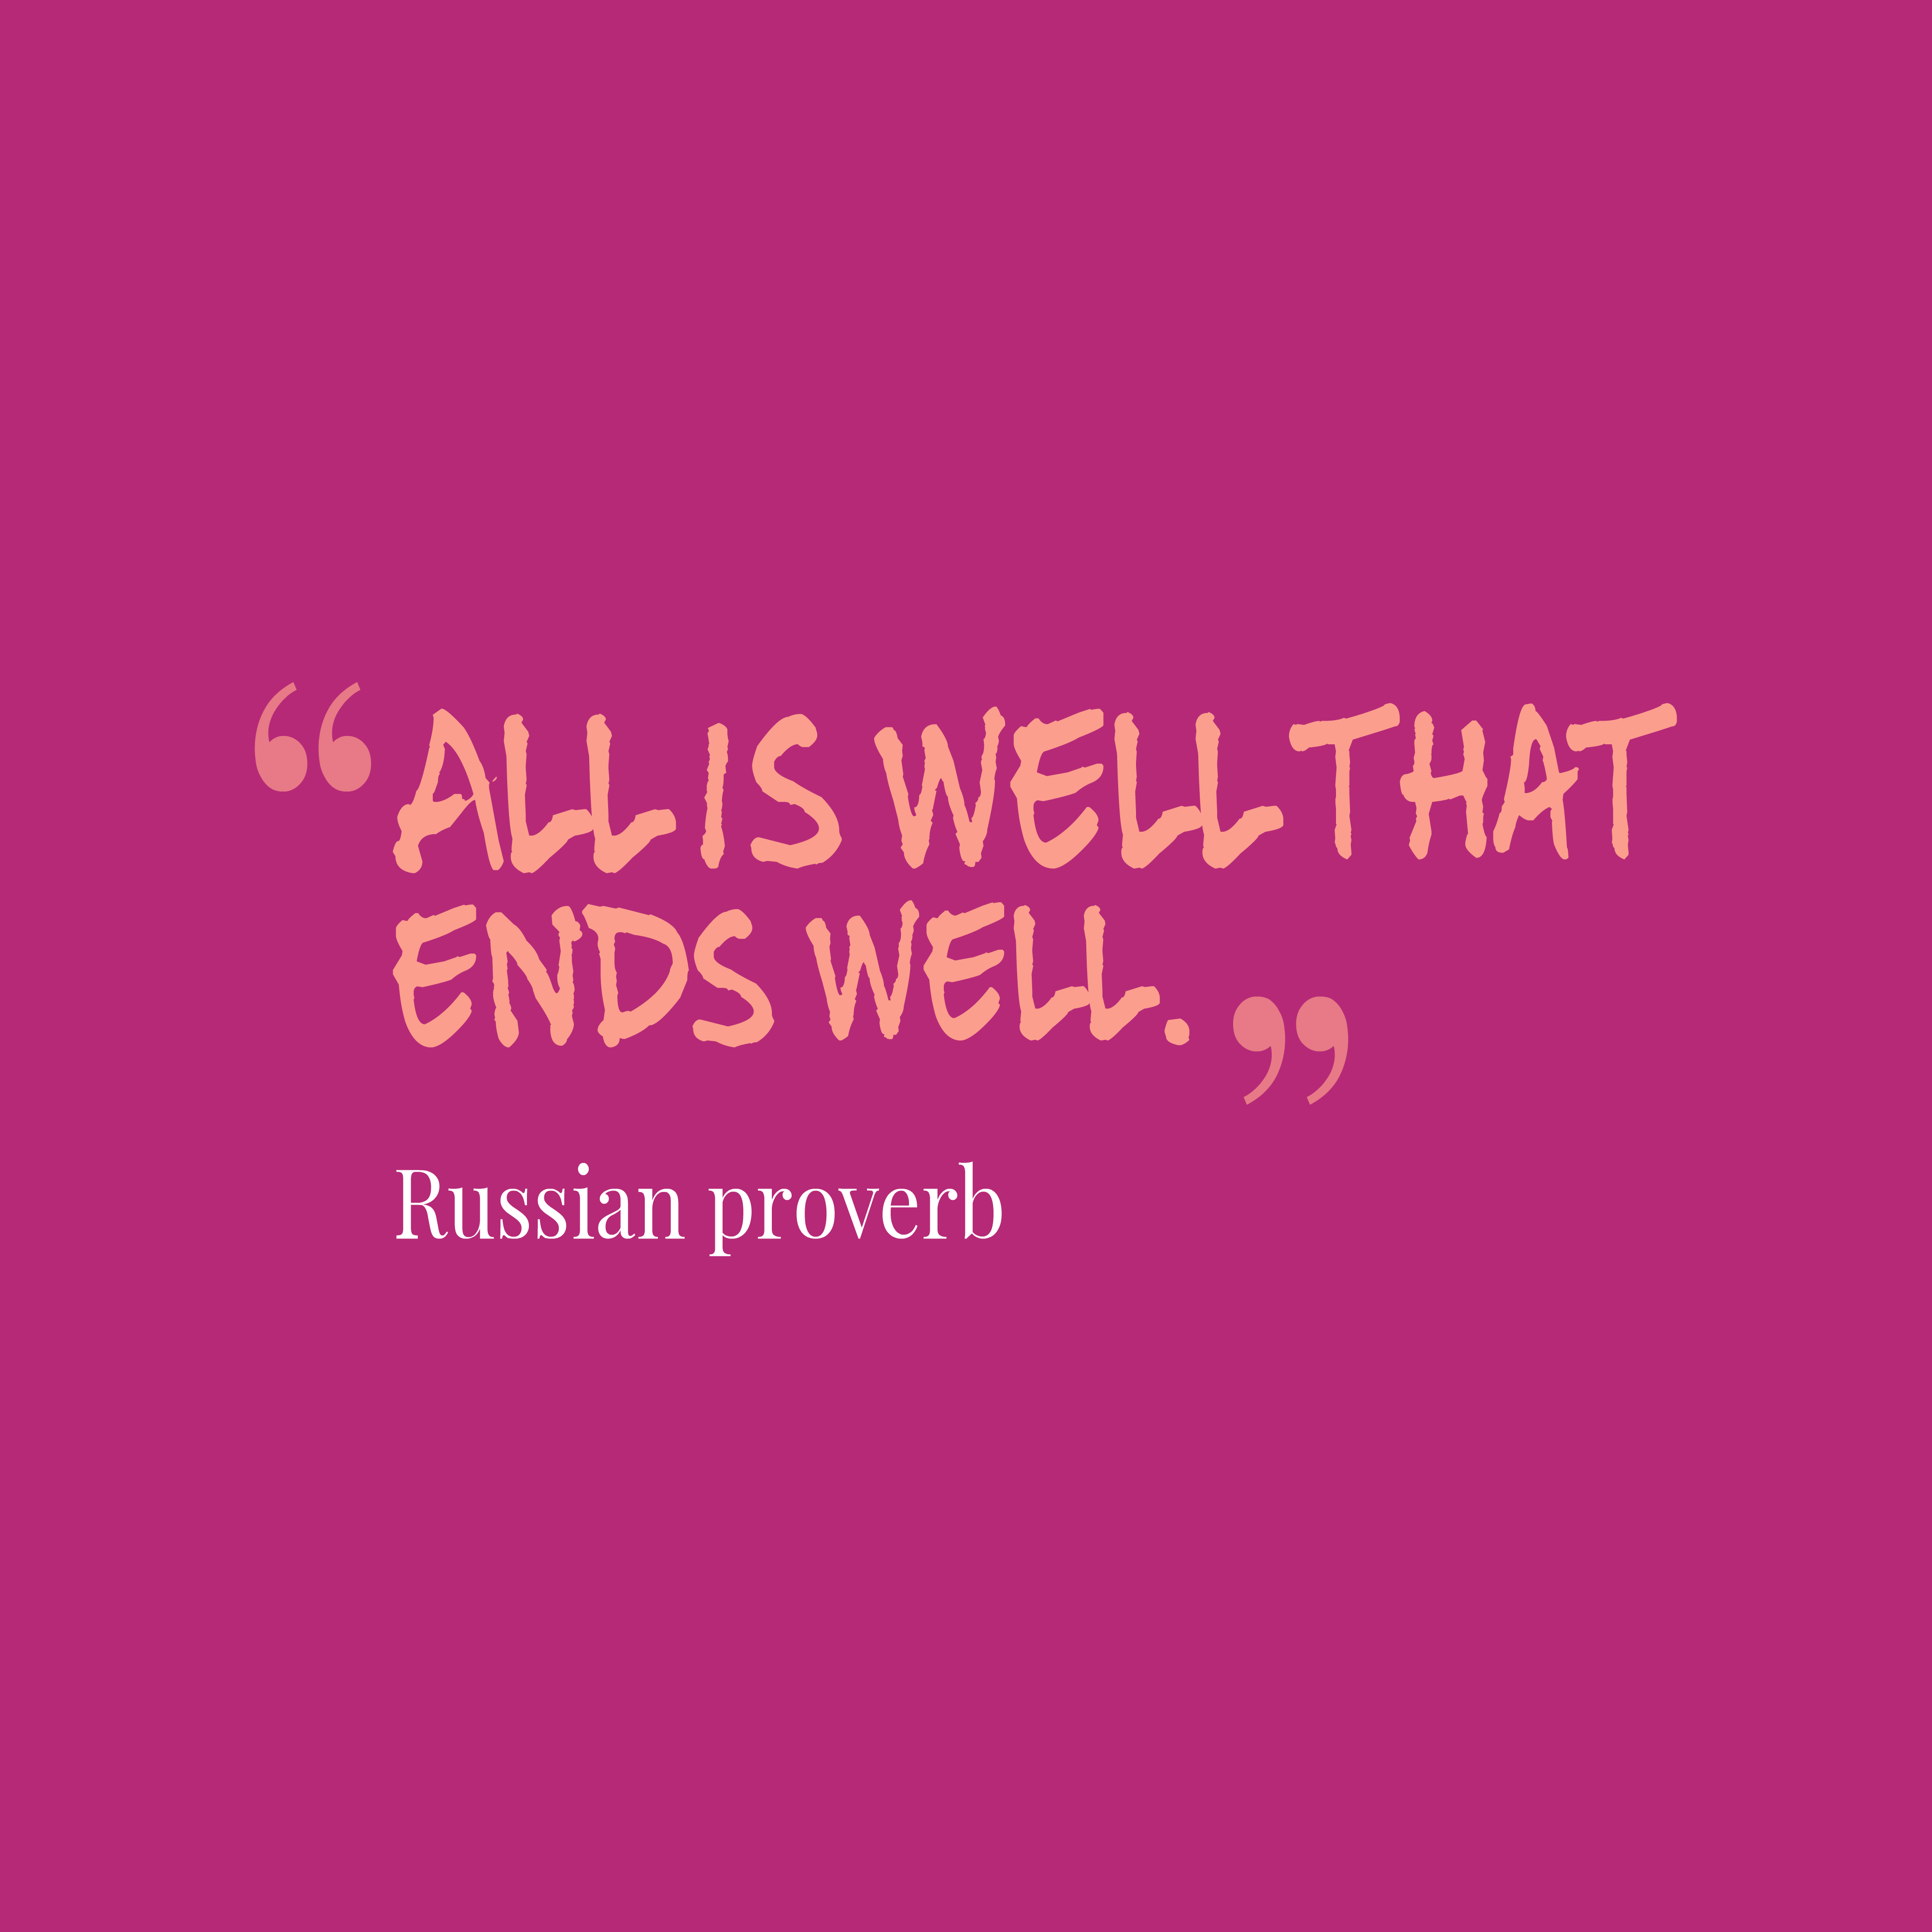 Russian Proverb About Well